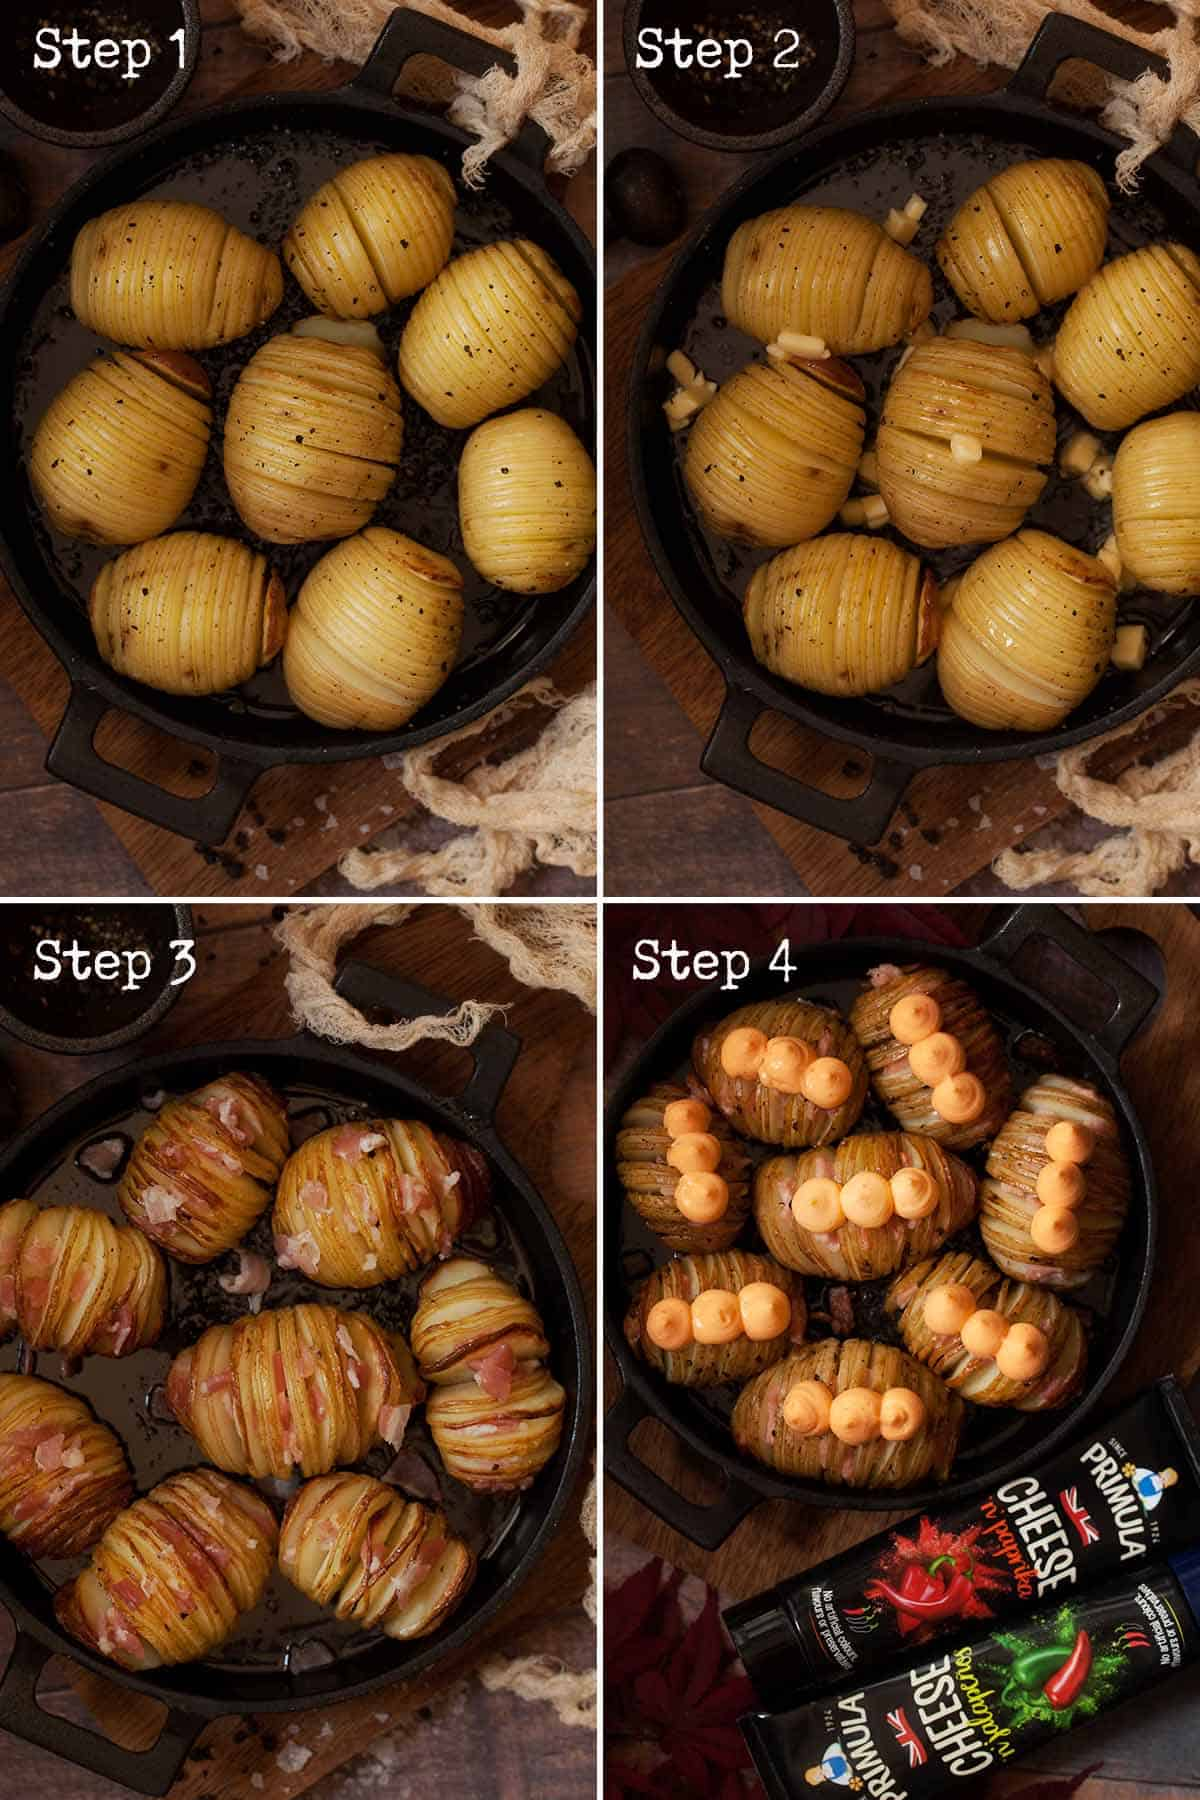 Collage of images showing cheesy hasselback potatoes being made